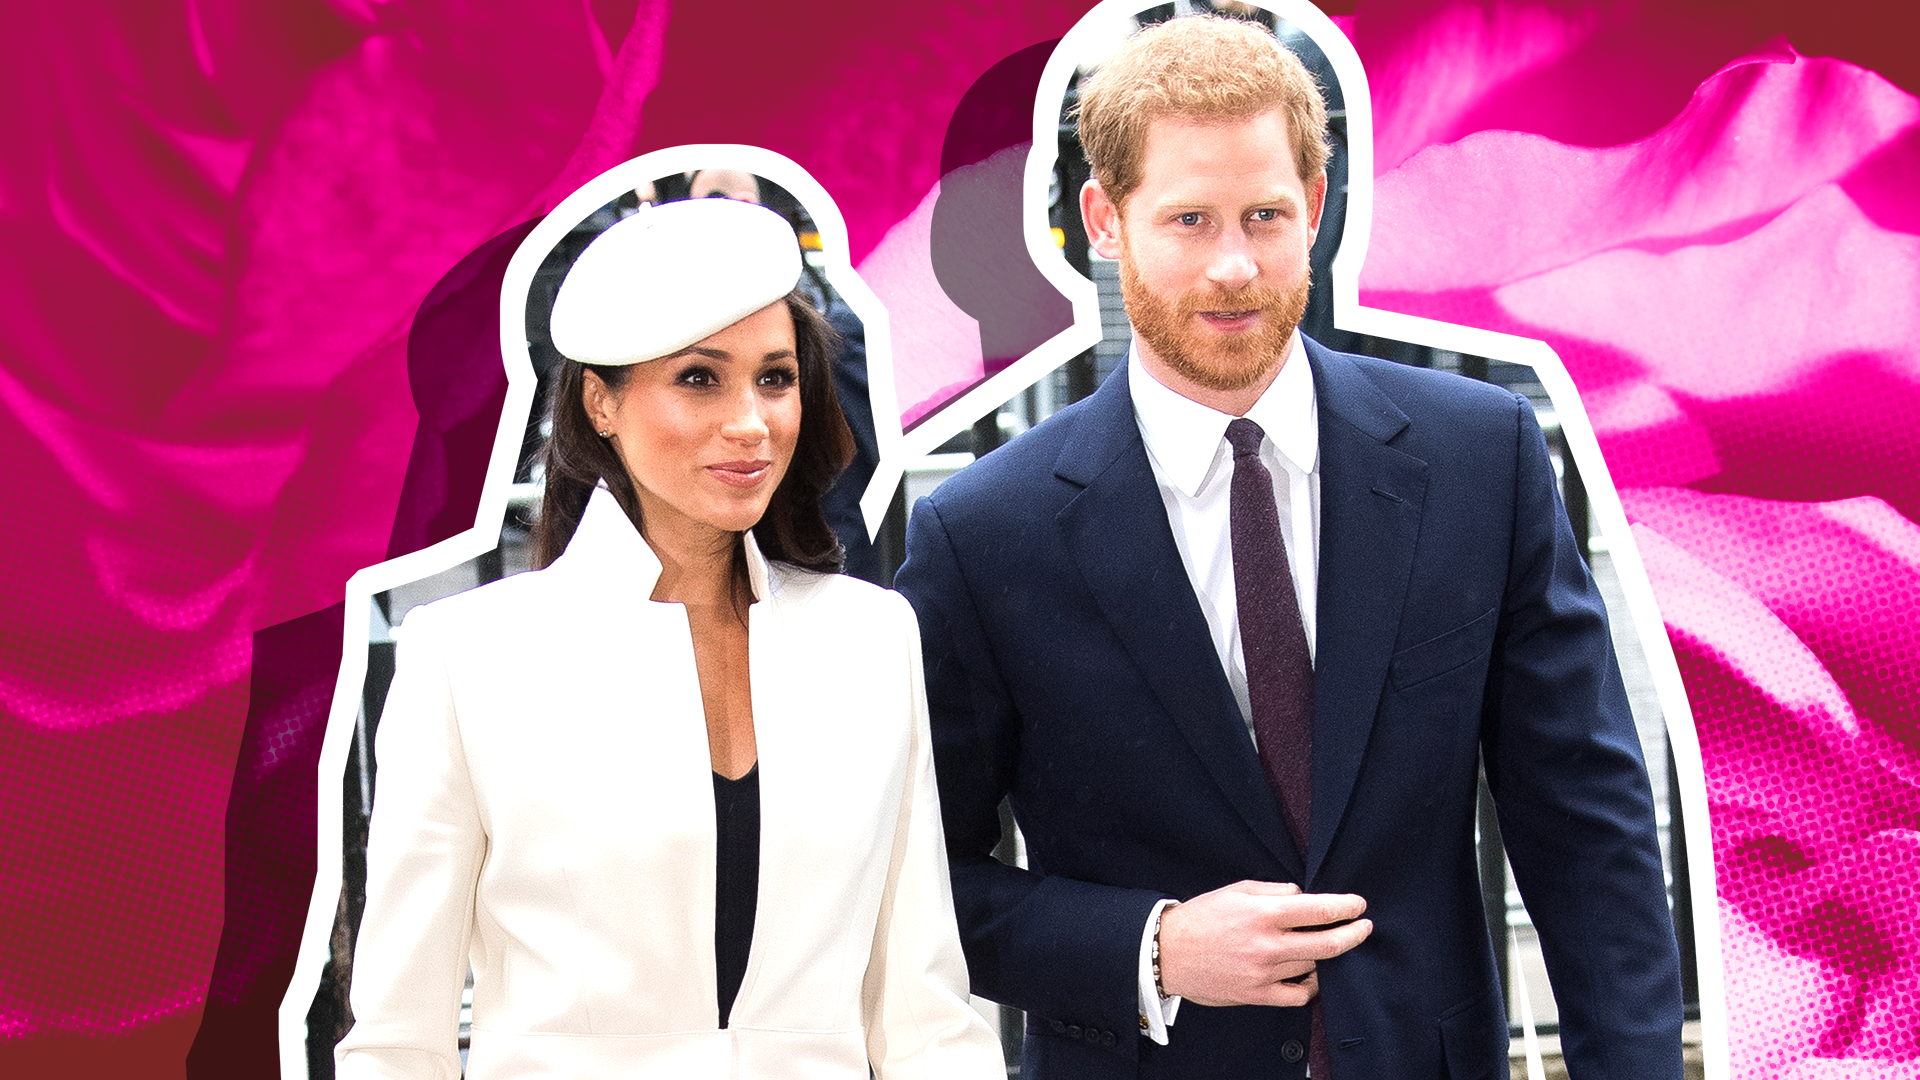 10 Ways Meghan Markle and Prince Harry's Wedding Could Break Royal Tradition